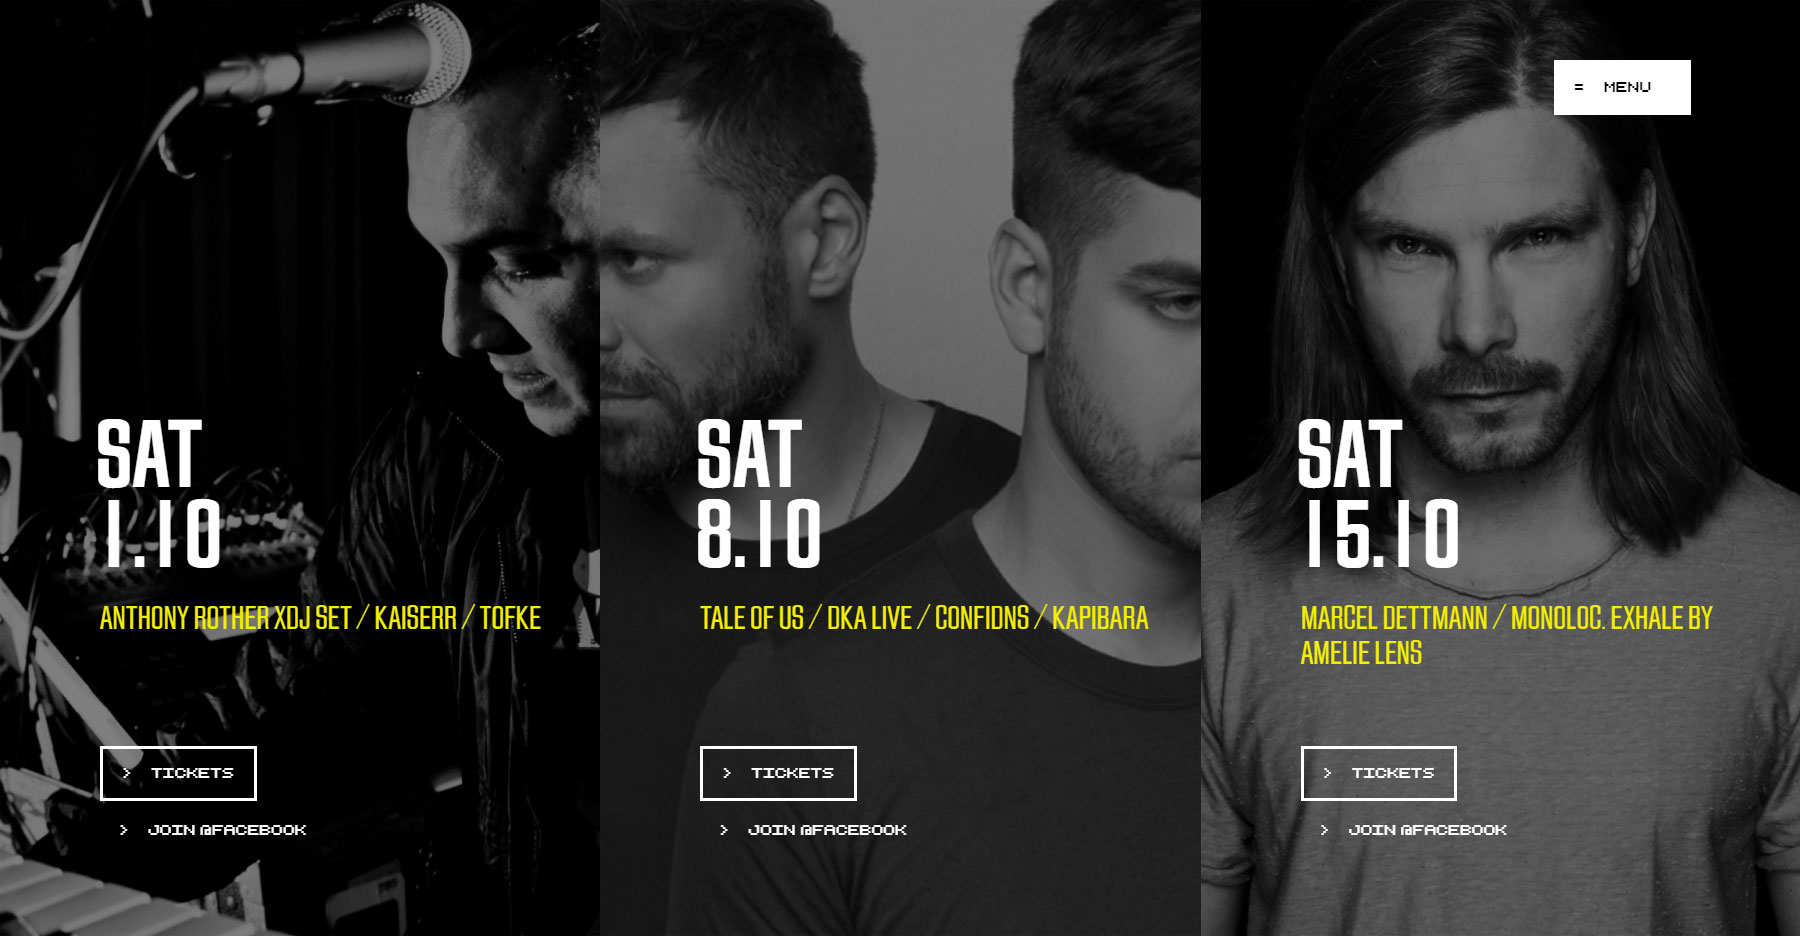 Labyrinth club Belgium - Website of the Day